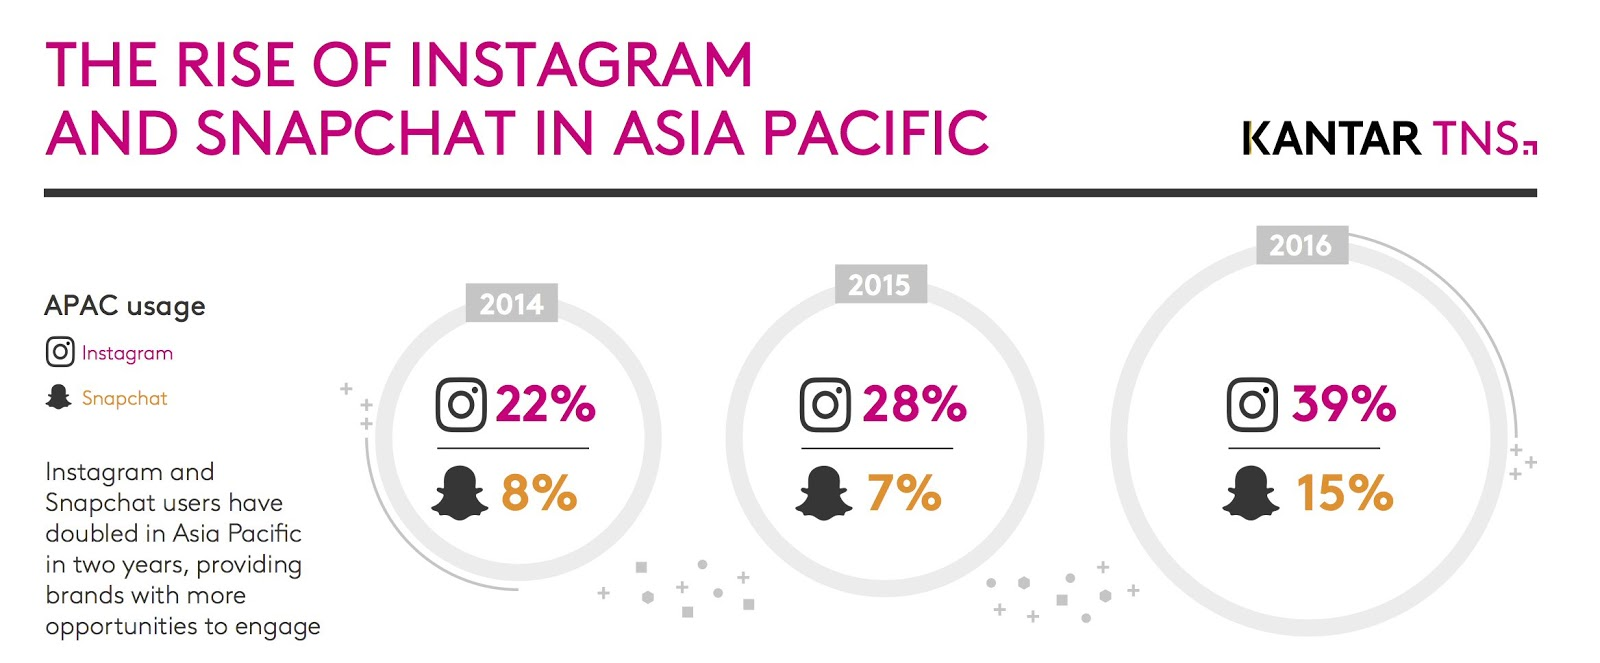 Malaysians are the most active Instagram users in Asia